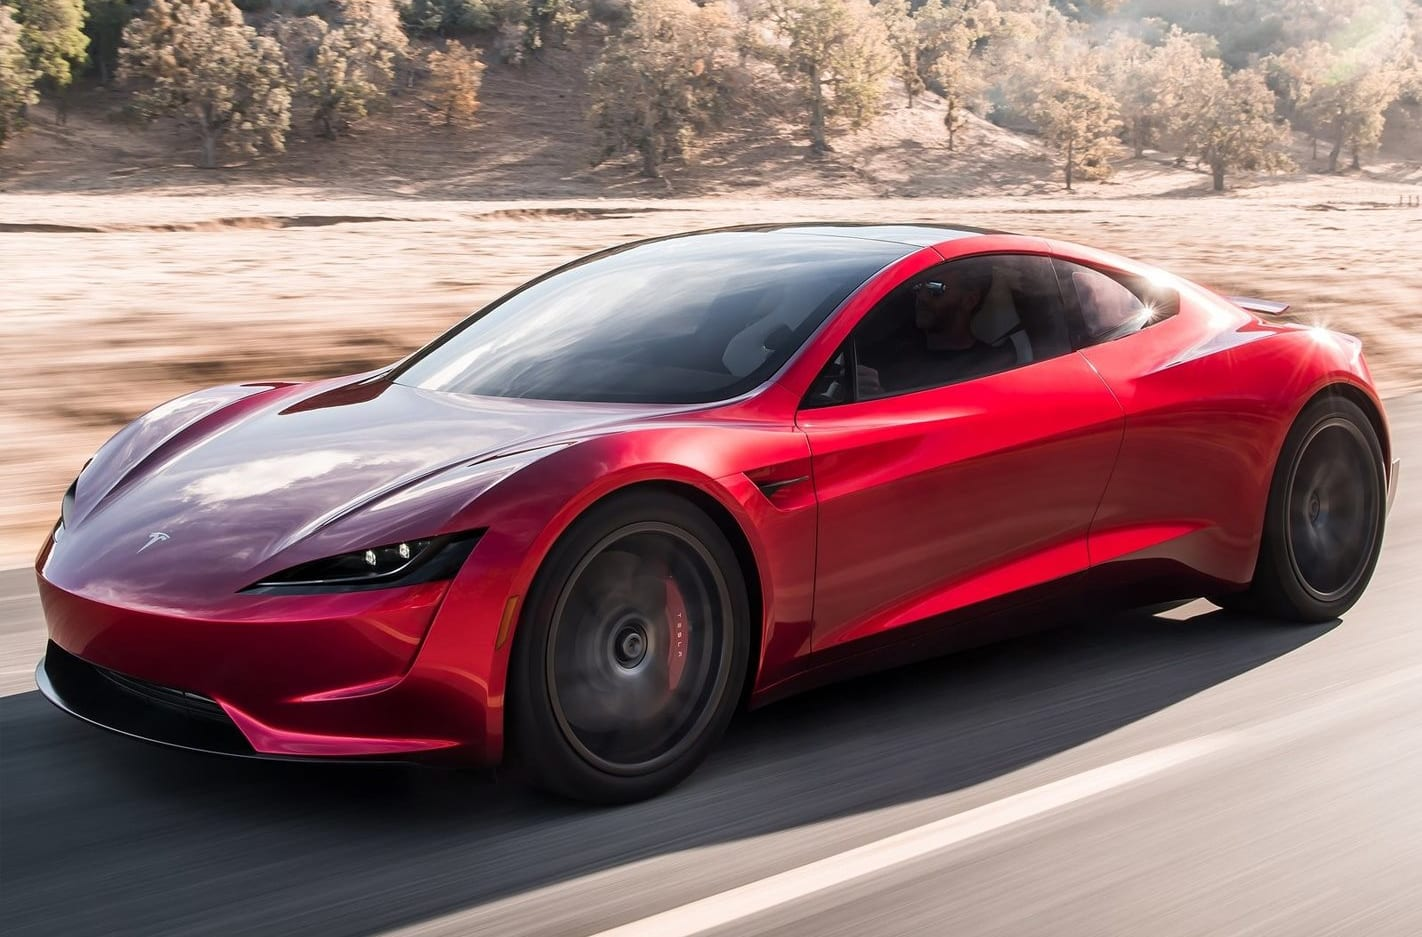 Customers hand over 66K for a ride in the new Tesla Roadster